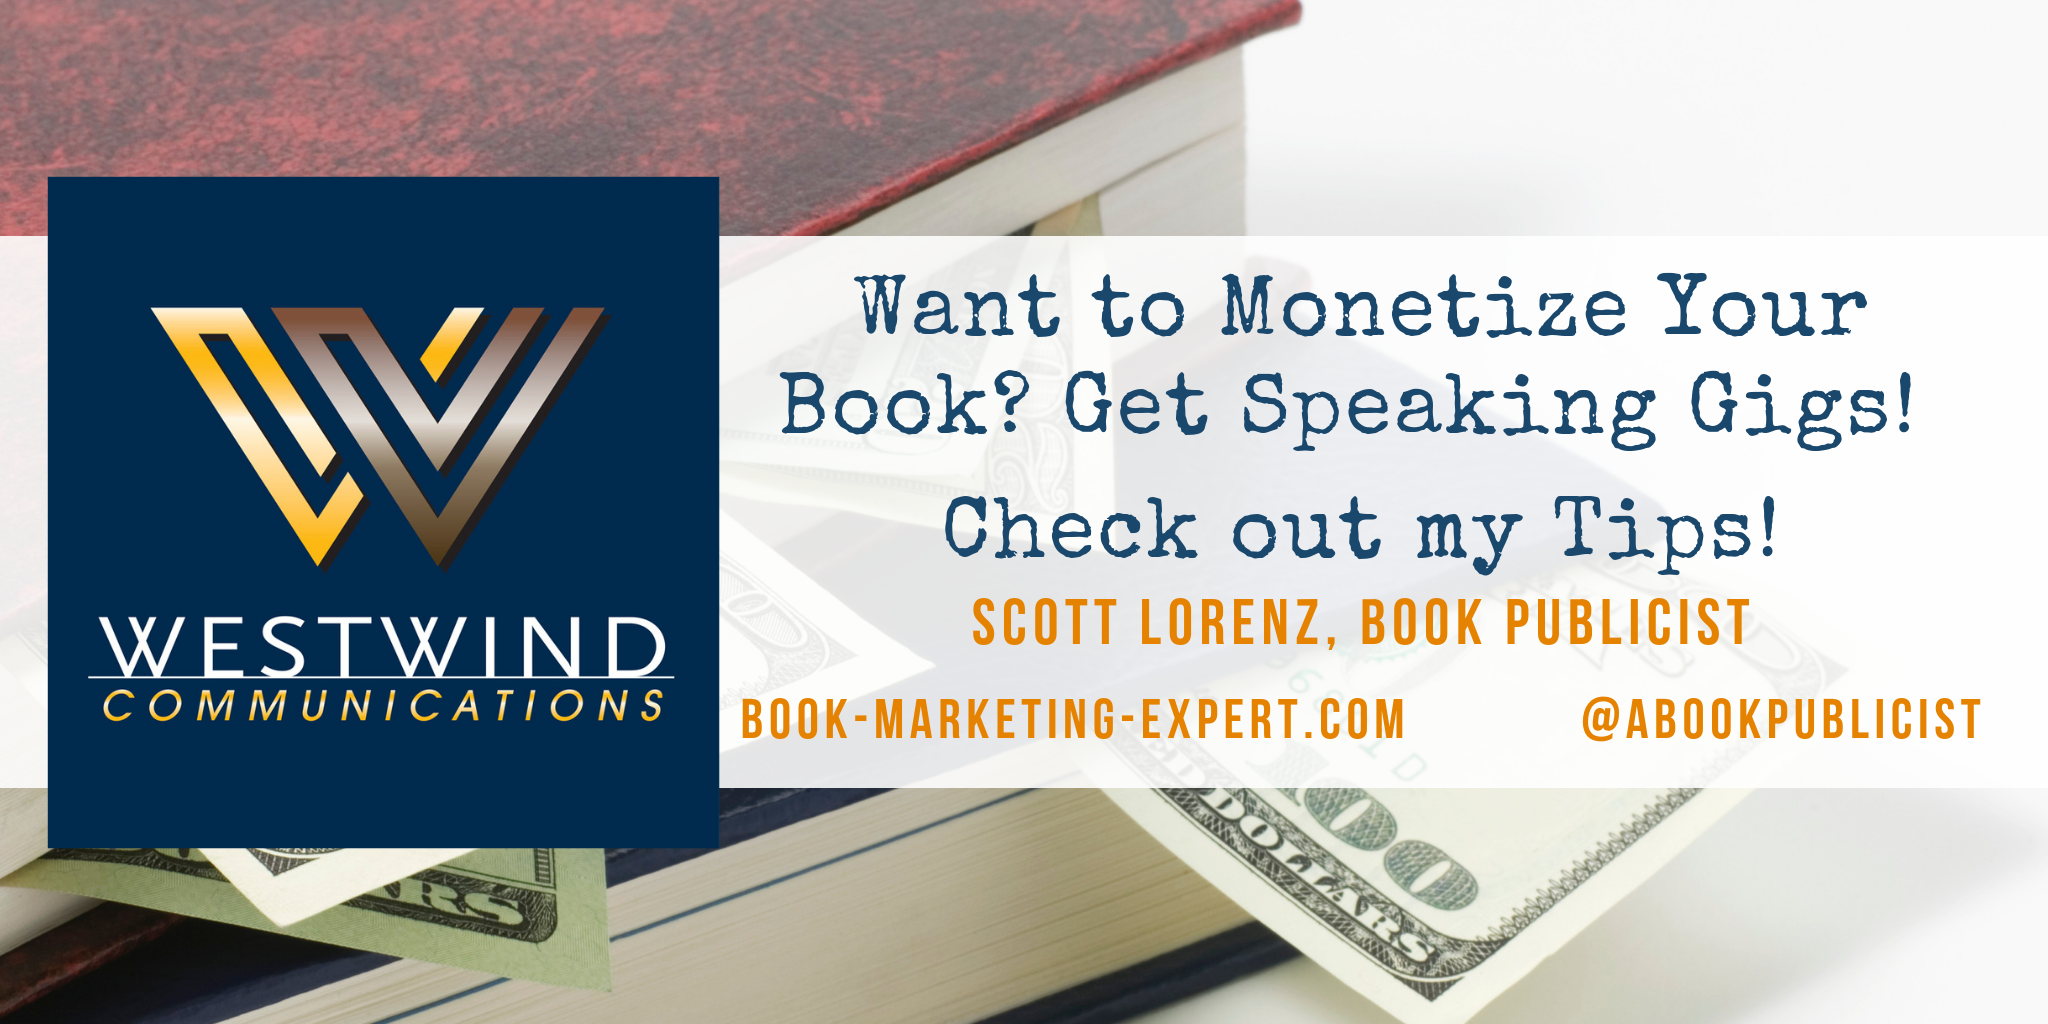 Learn how Authors can get Speaking Gigs